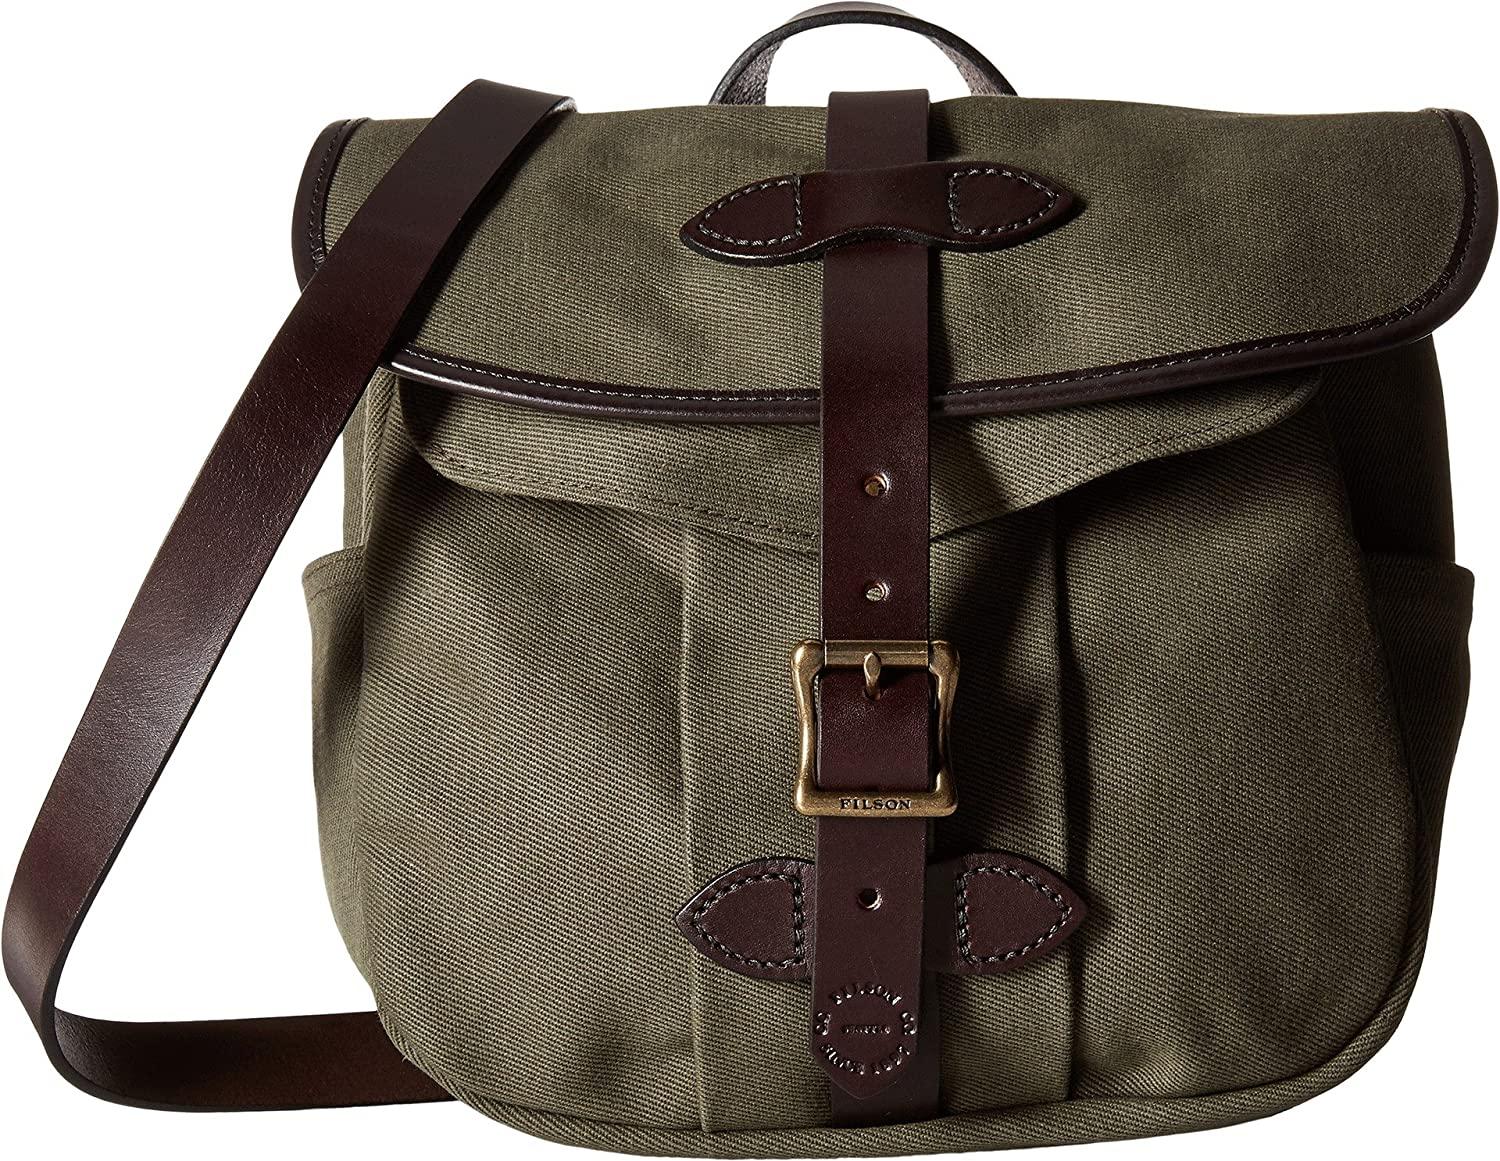 Filson Unisex Small Field Bag